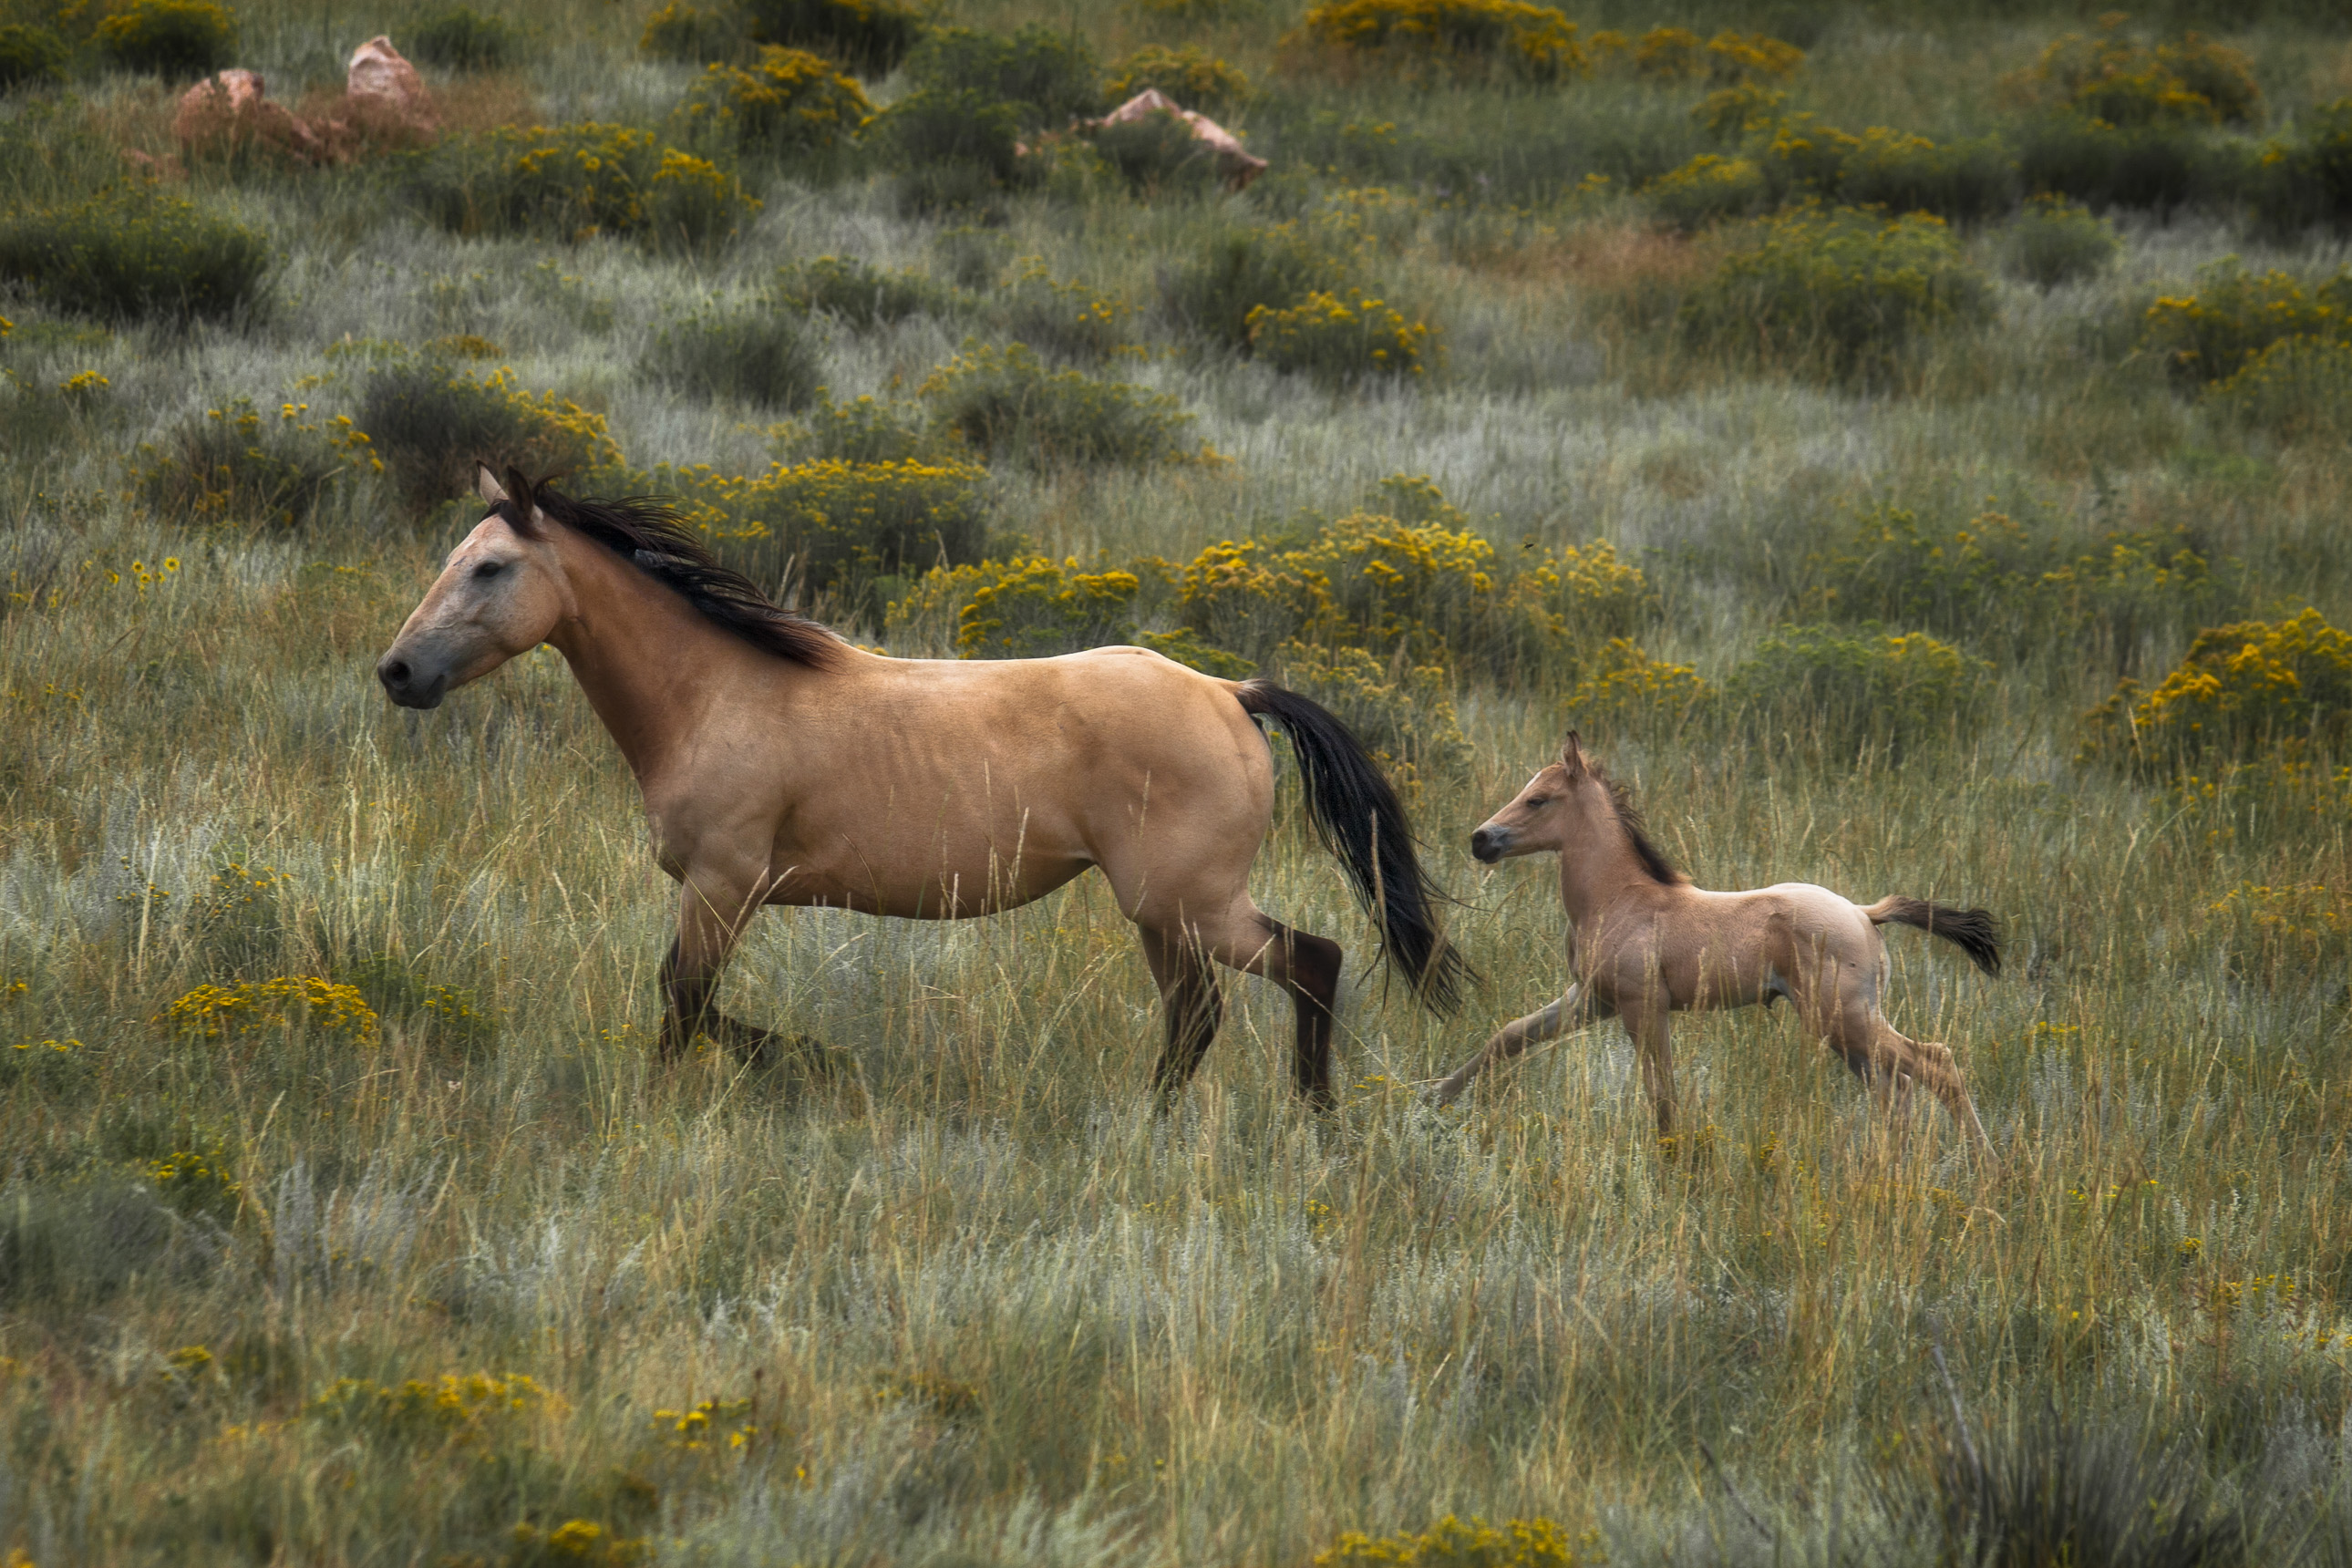 Mother and baby horse on a ranch in Colorado